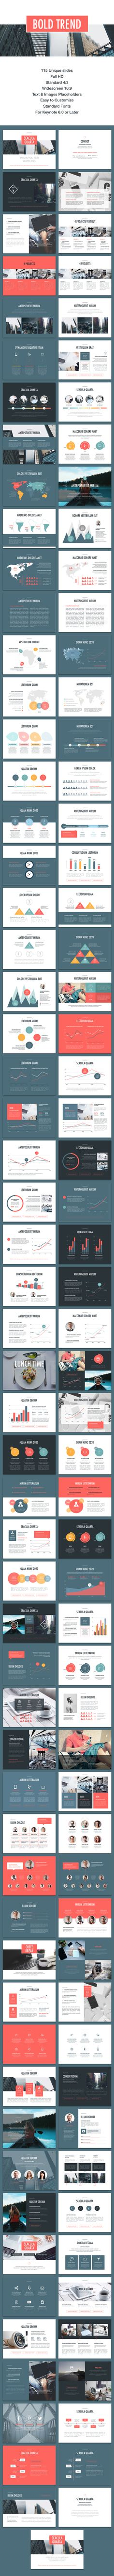 Bold Trend Keynote Slides Template. Download here: http://graphicriver.net/item/bold-trend/14957434?ref=ksioks